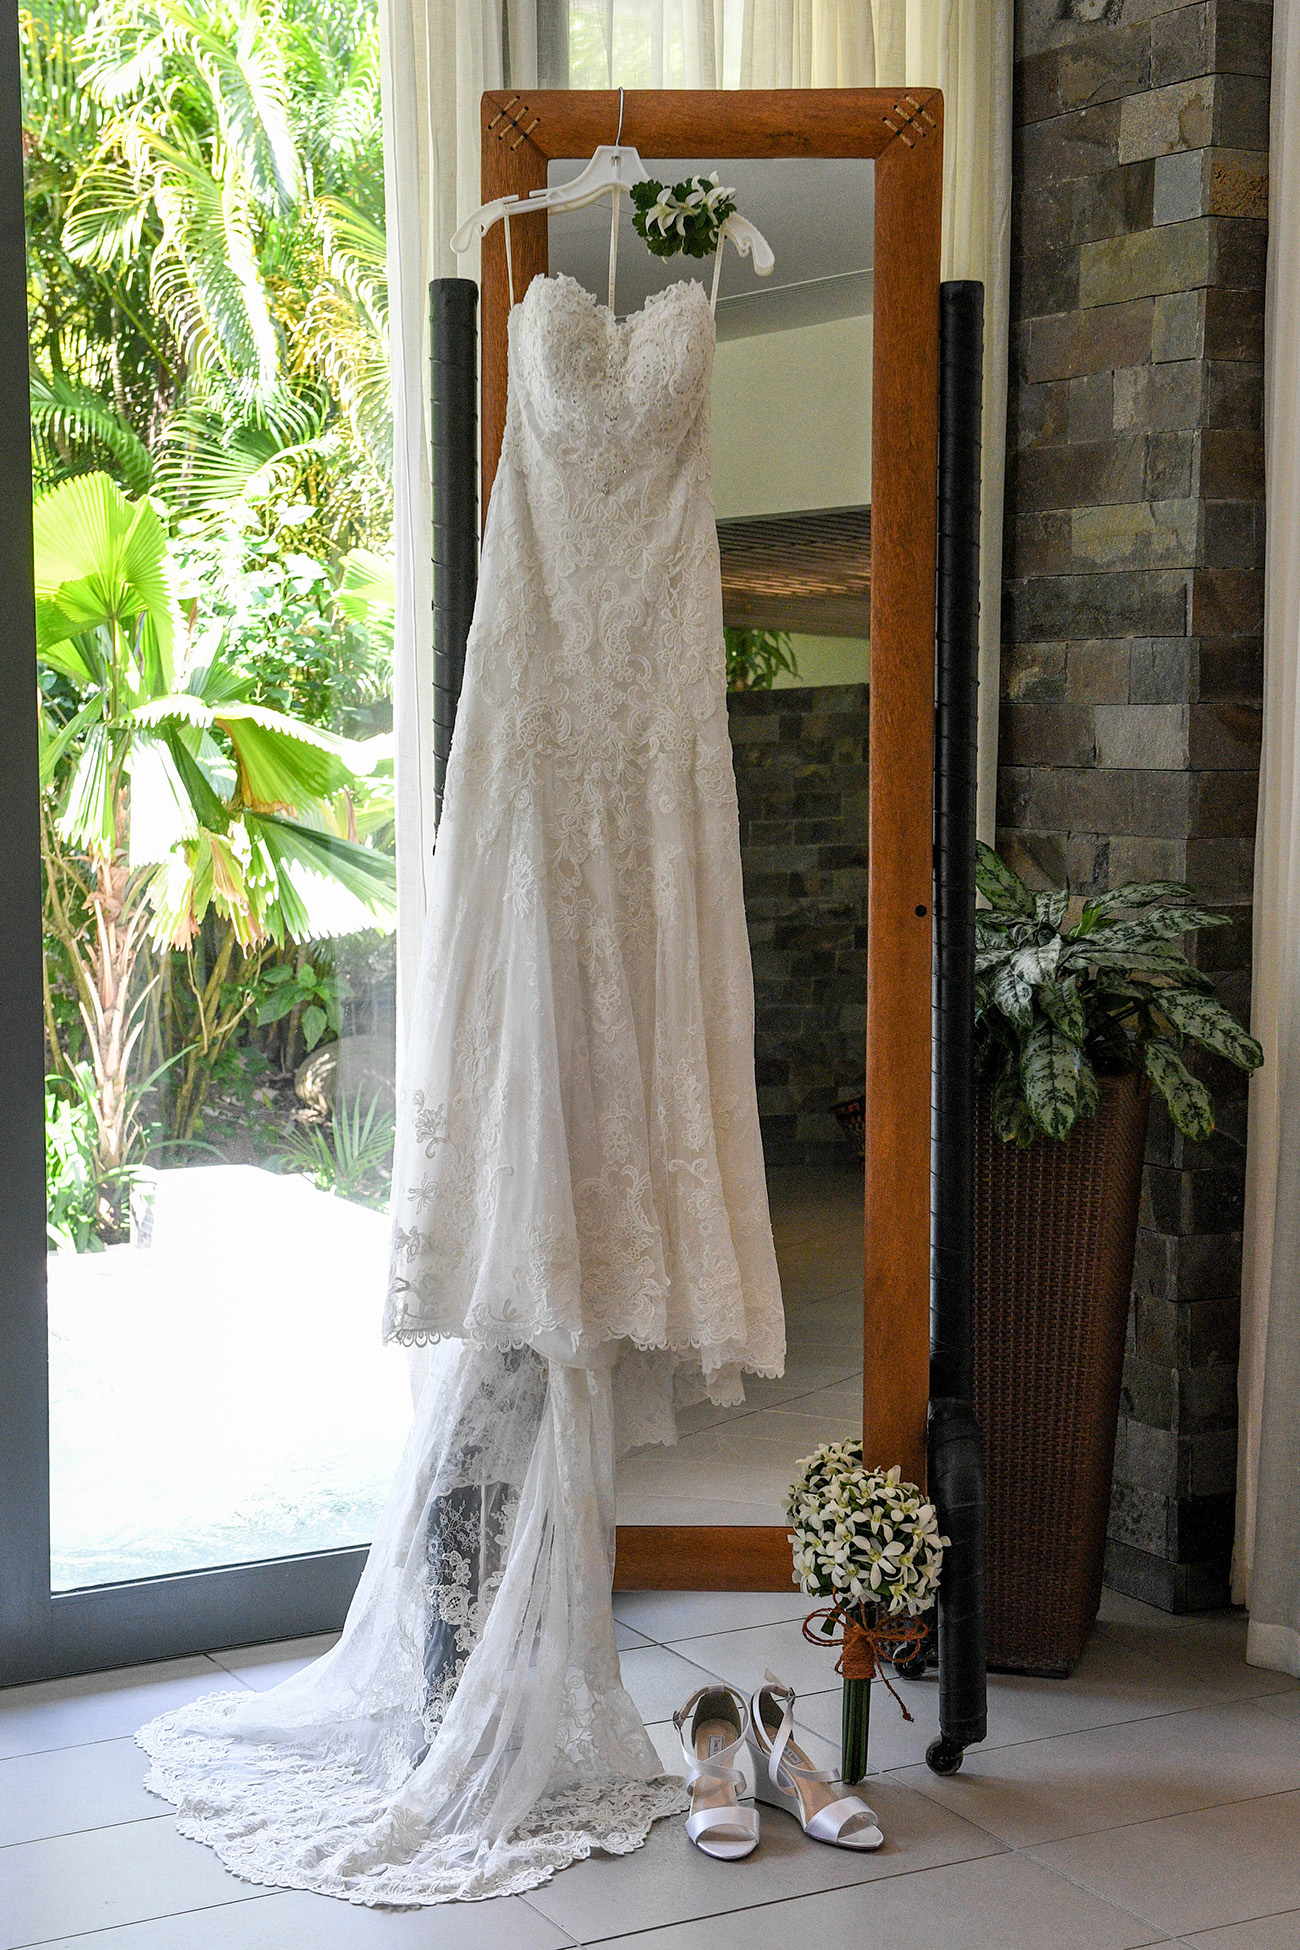 Glorious Lace Wedding Gown Wedding Photographer